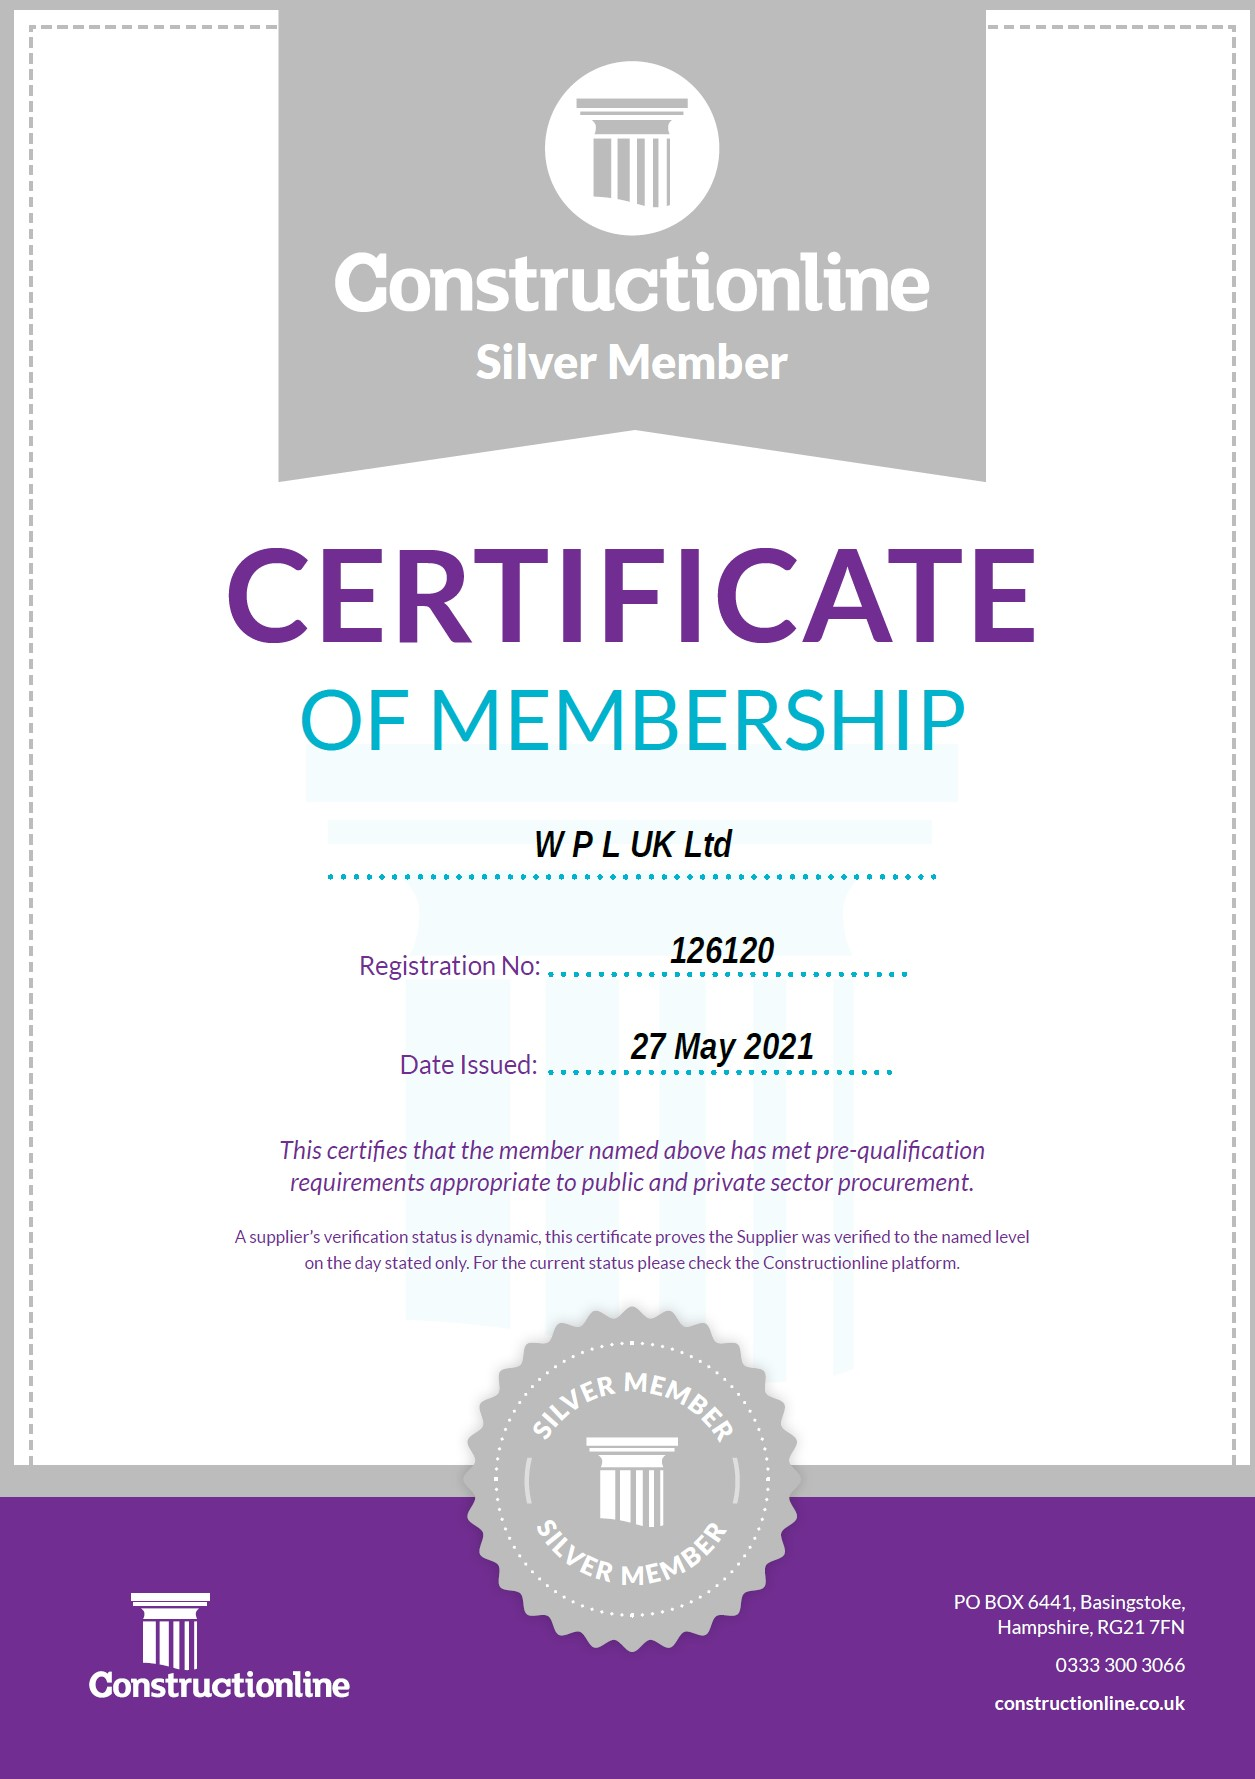 WPLUK Constructionline SILVER Certificate Issued 27th May 2021